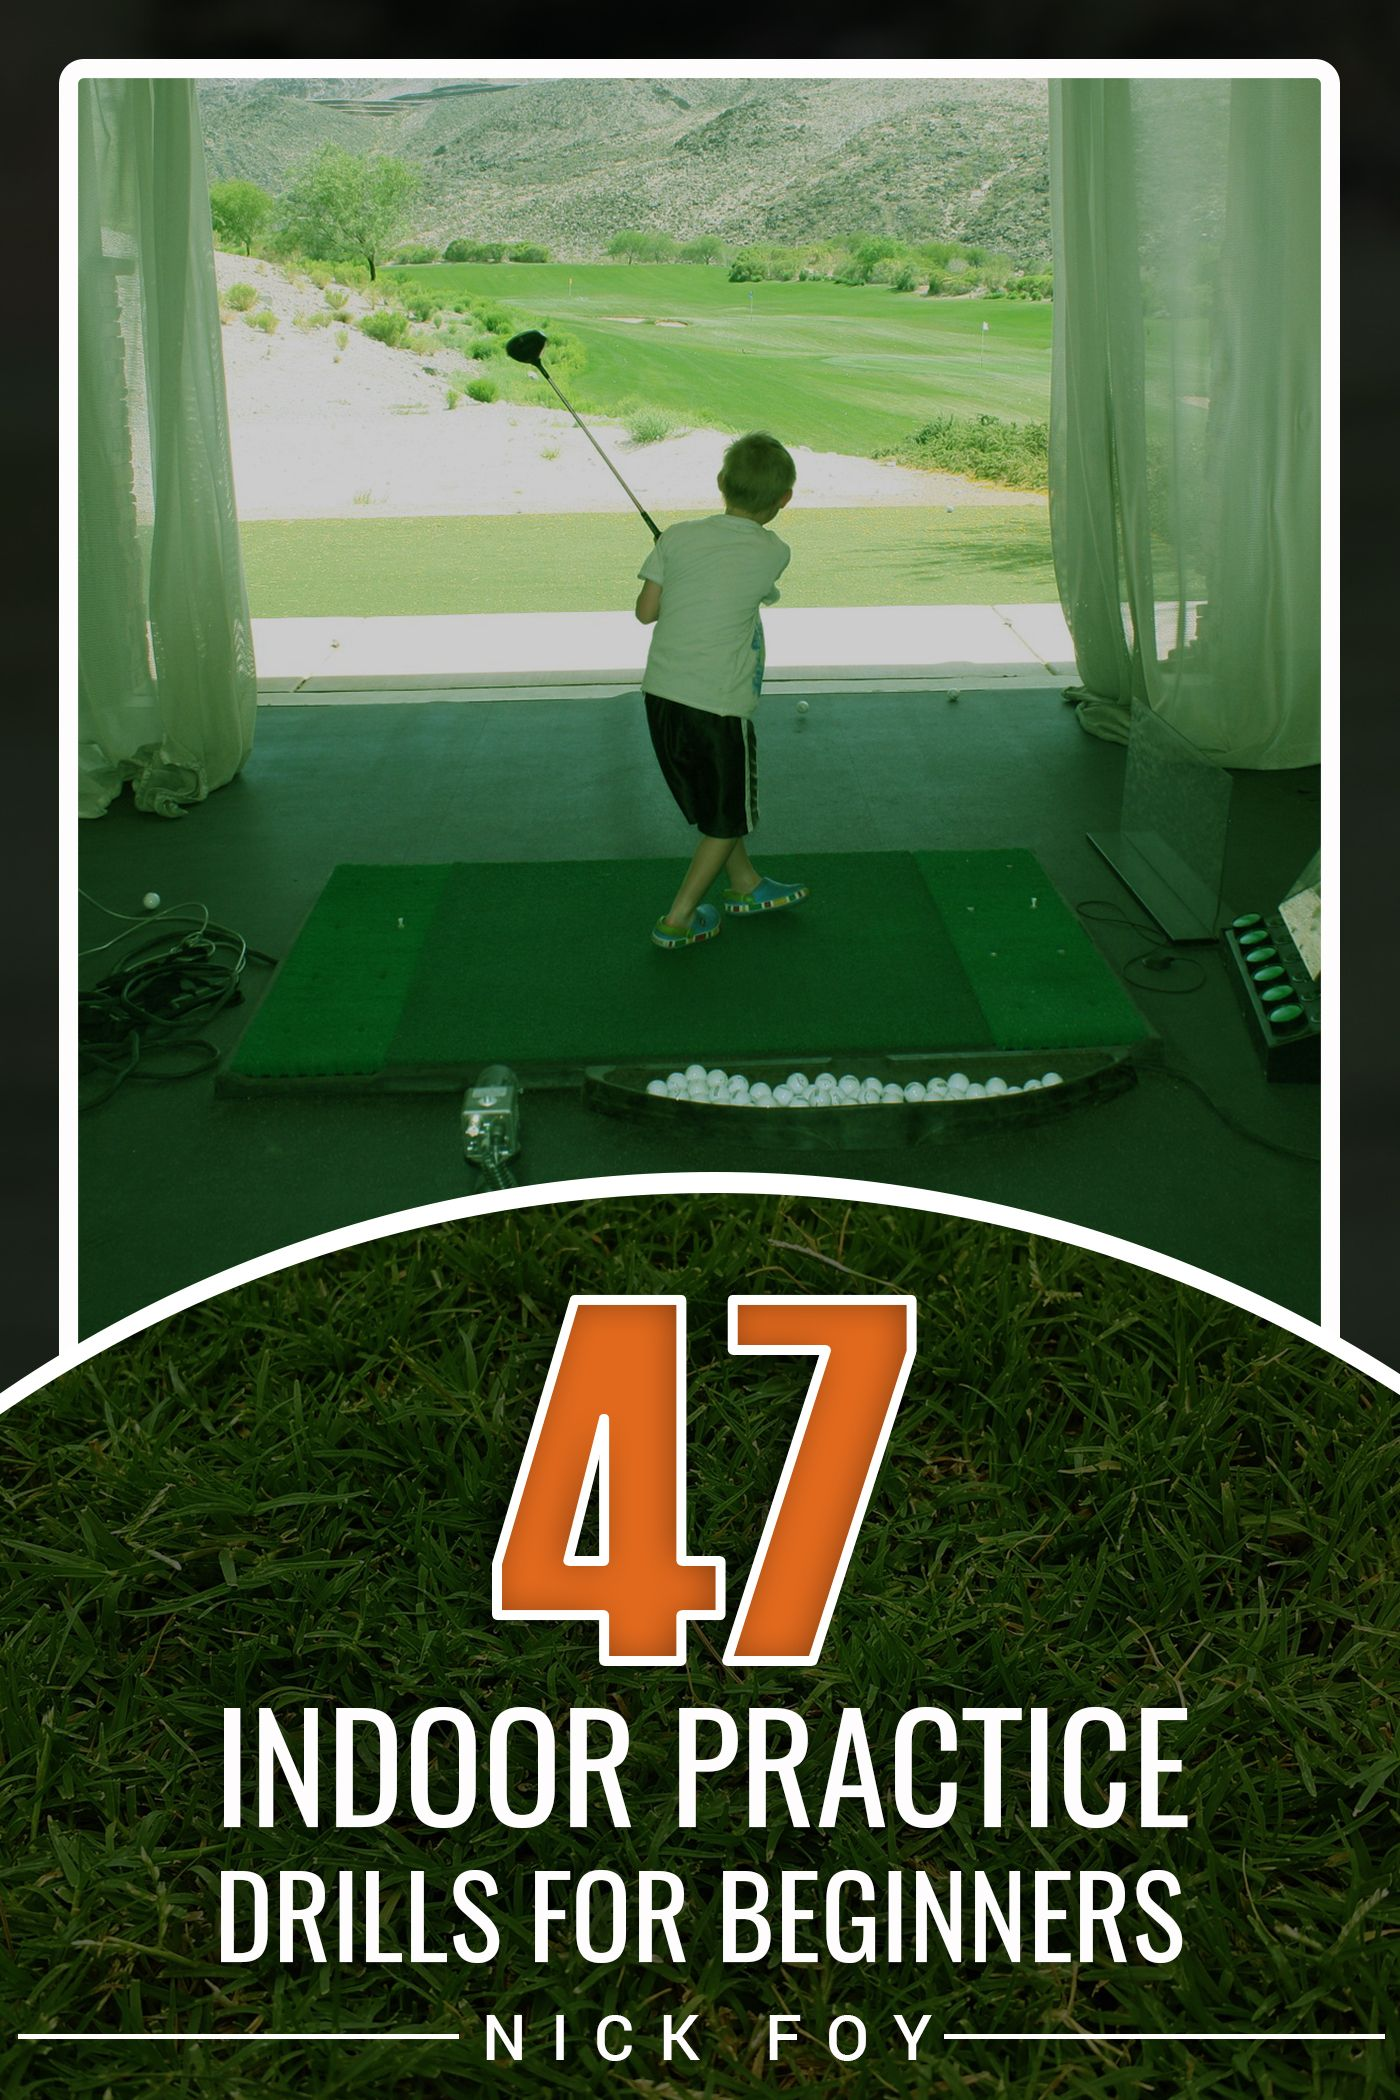 47 Indoor Golf Practice Drills How To Improve At Golf From Home Golf Tips For Beginners Drill Golf Lessons